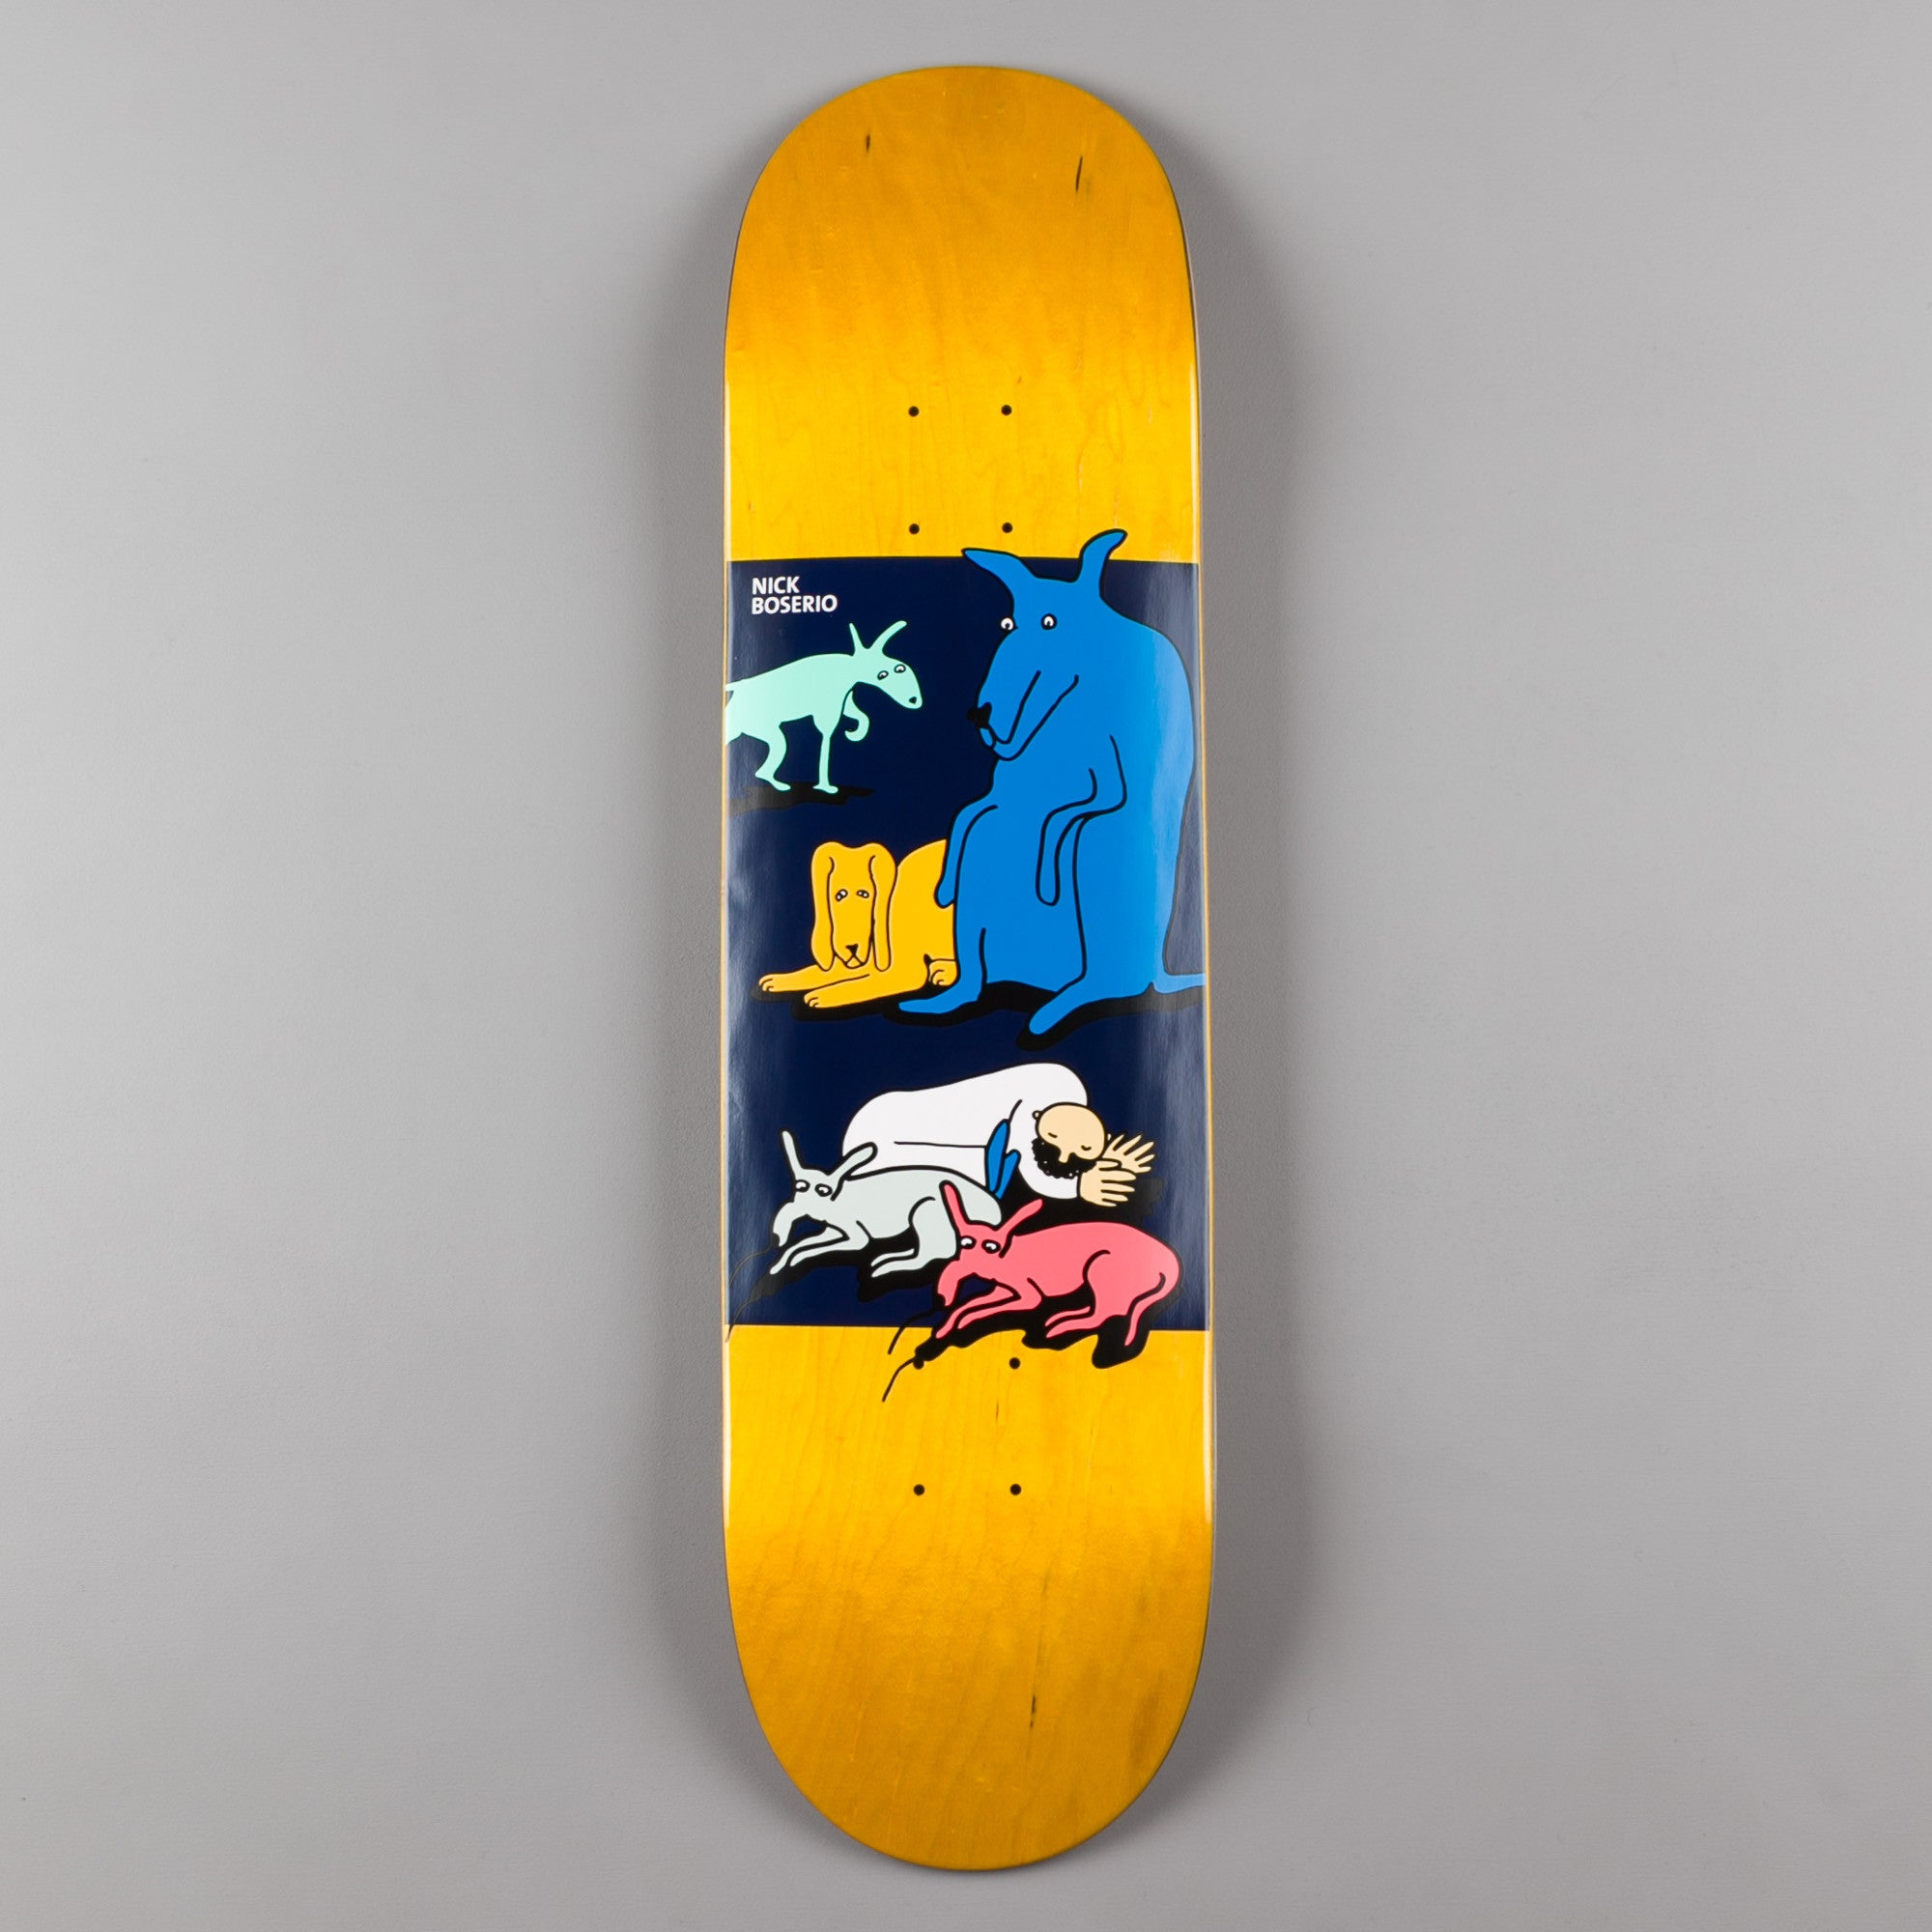 Polar Nick Boserio All My Dogs Deck - 8.5""